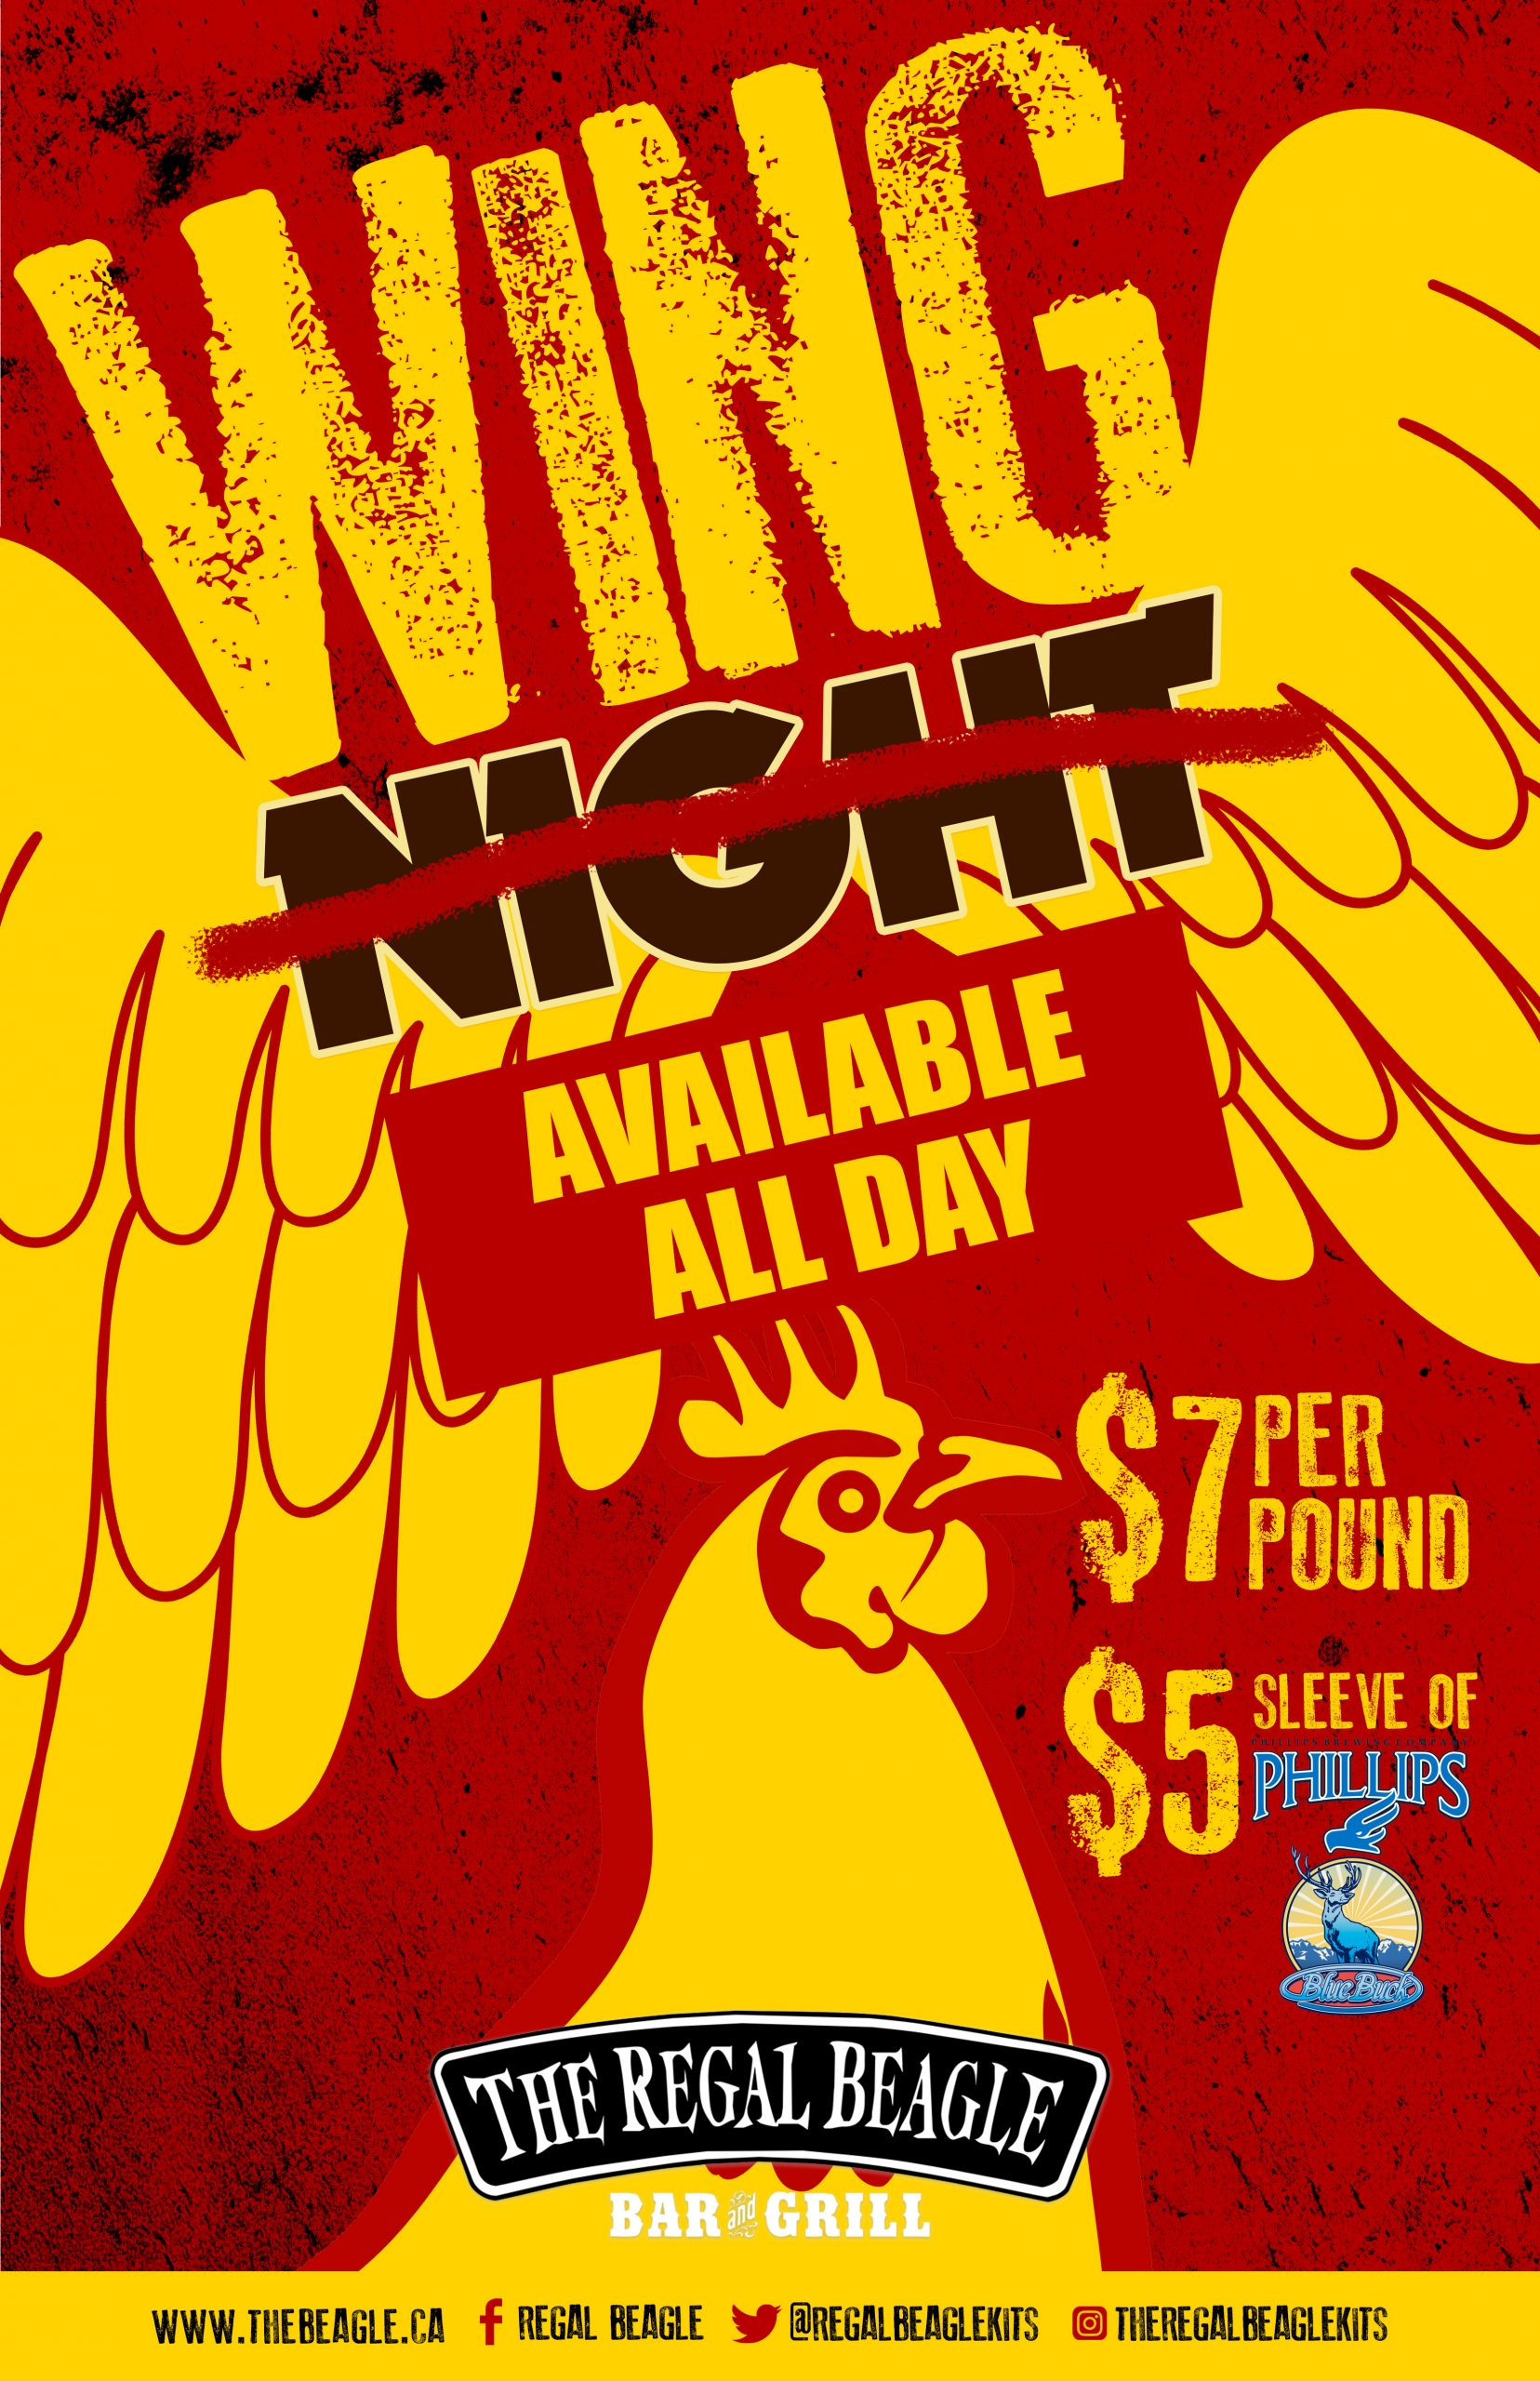 Red and yellow poster with a chicken and wings with text: Wing Night, Night is crossed out with available all day underneath. $7 per pound, $5.50 blue buck